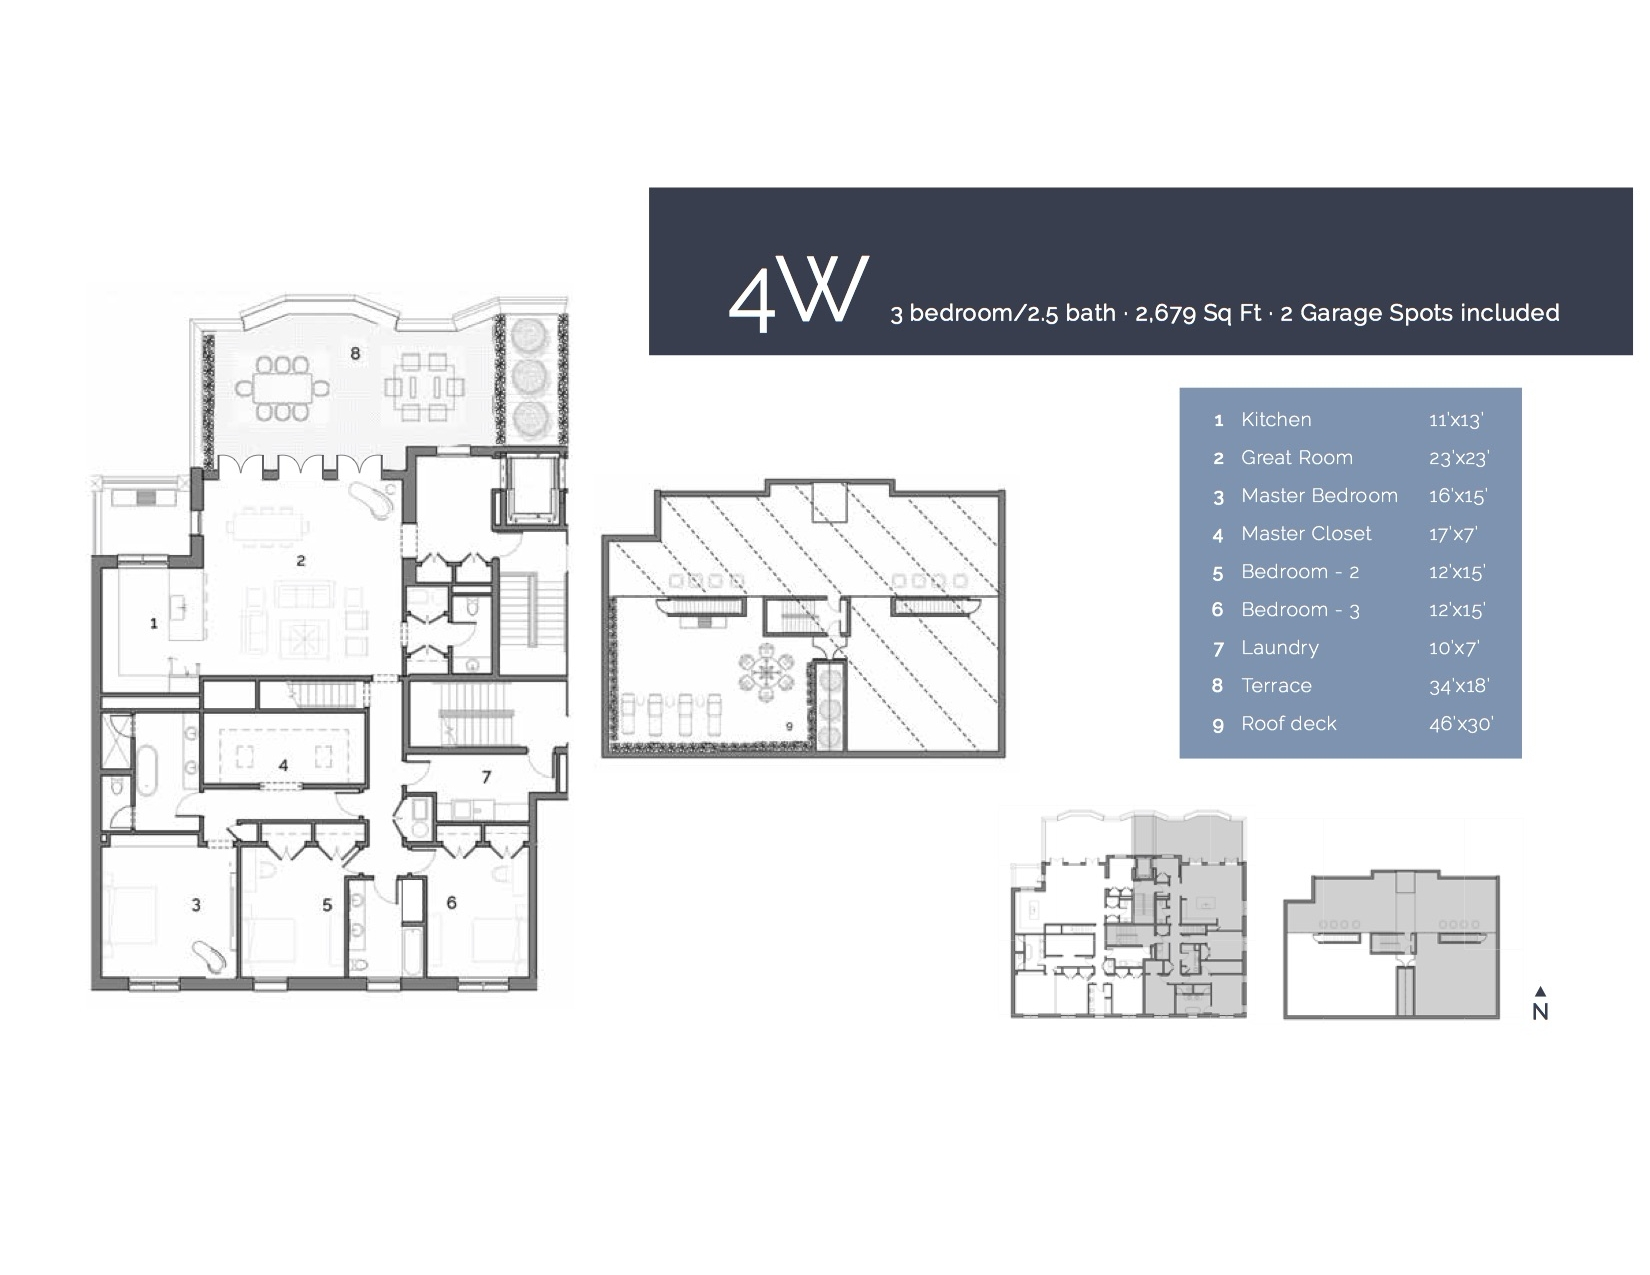 4W - 3 Bedroom/ 2.5 Bath 2679 sf.